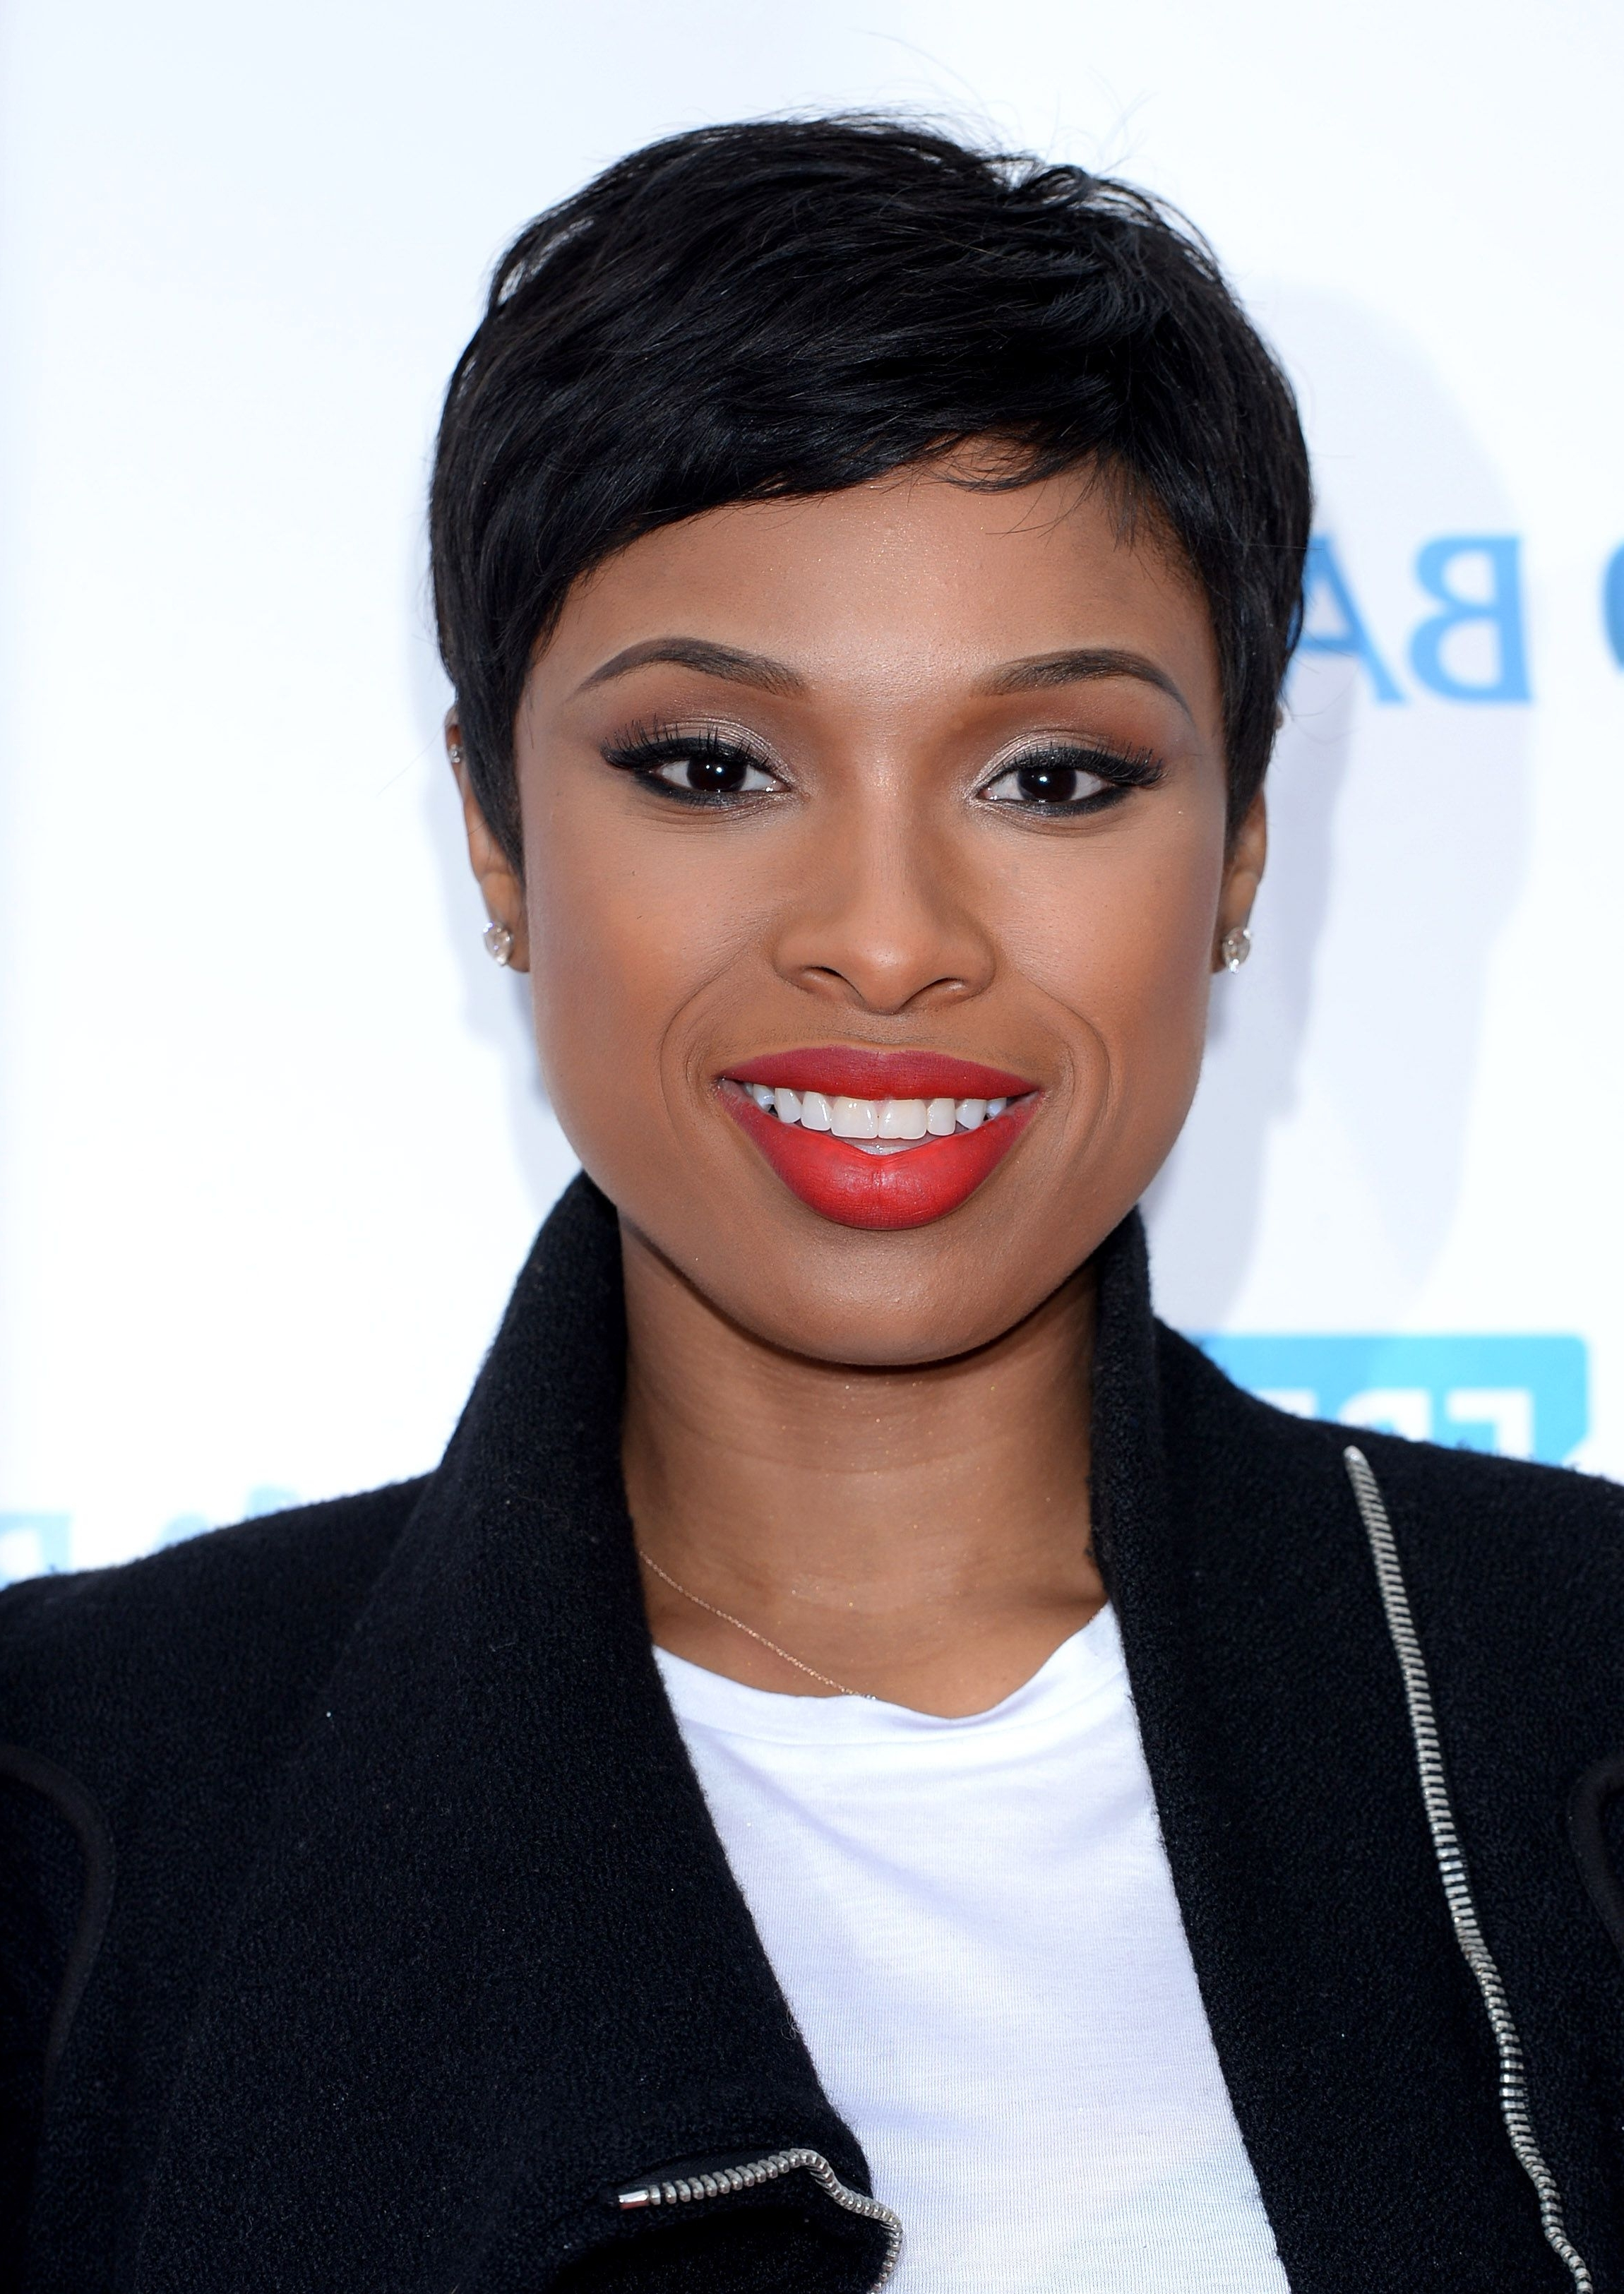 Well Known Long Honey Blonde And Black Pixie Hairstyles Pertaining To 40 Best Short Pixie Cut Hairstyles 2018 – Cute Pixie Haircuts For Women (View 20 of 20)